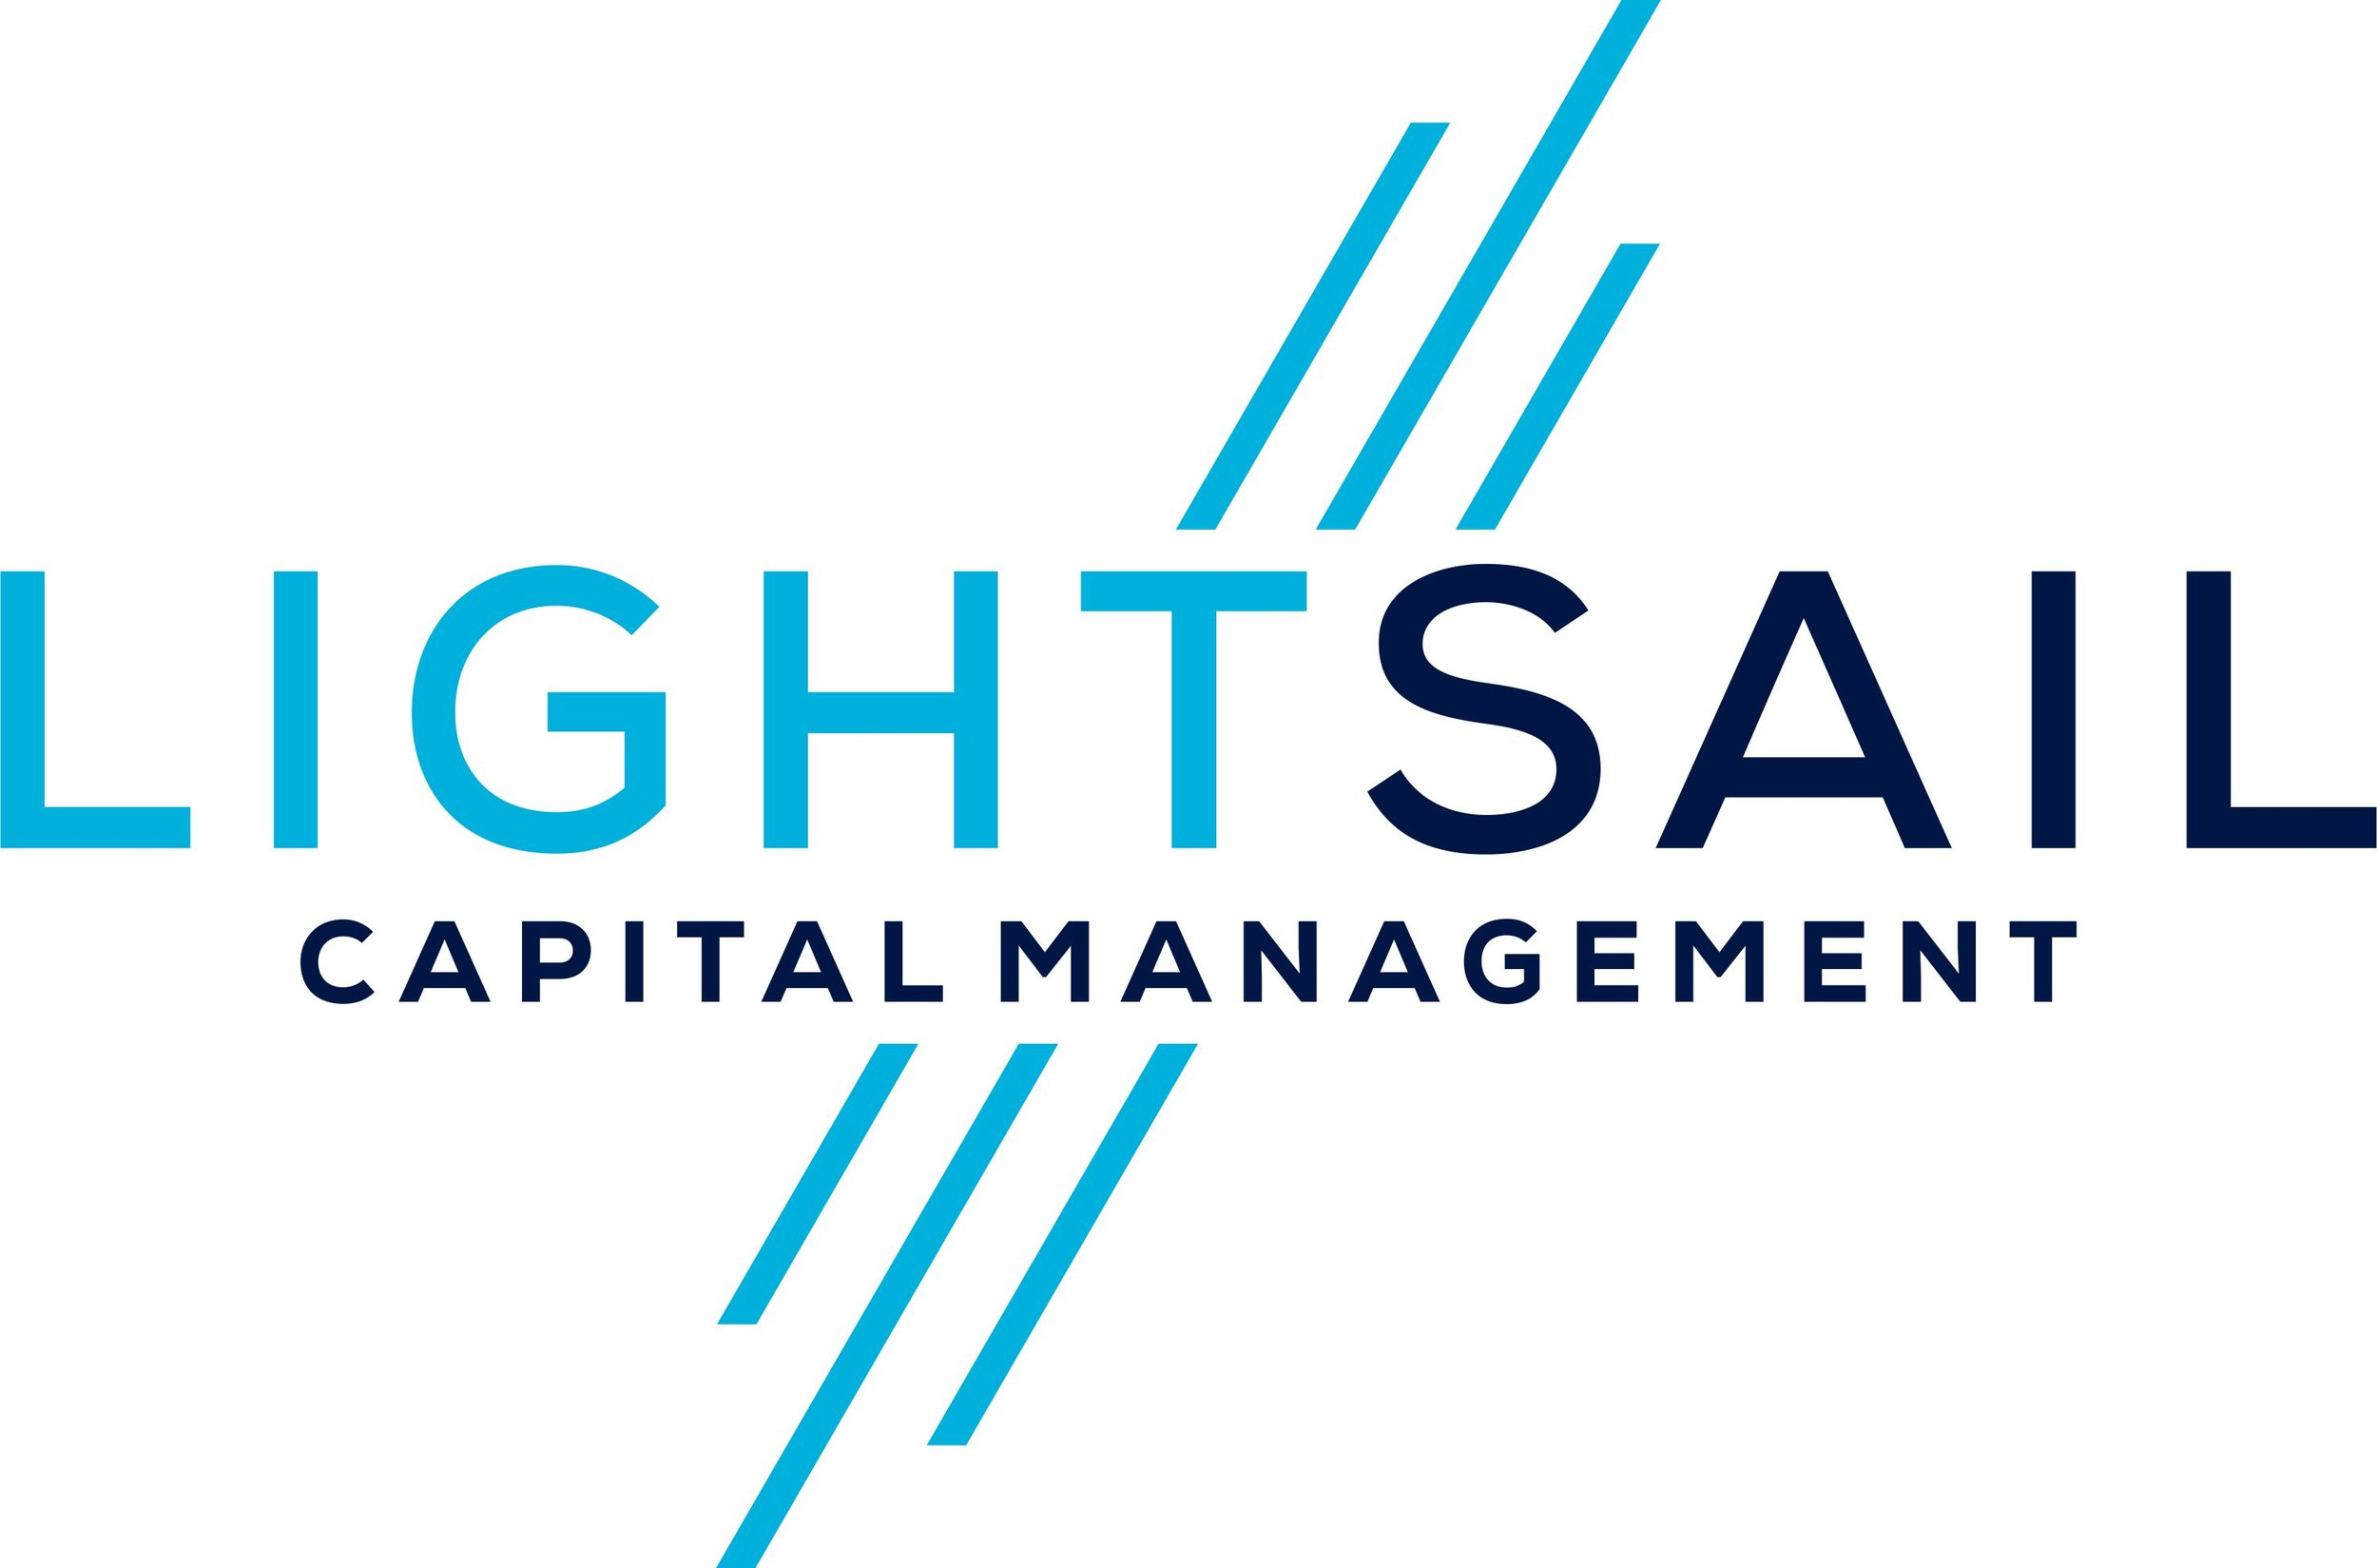 Lightsail Capital